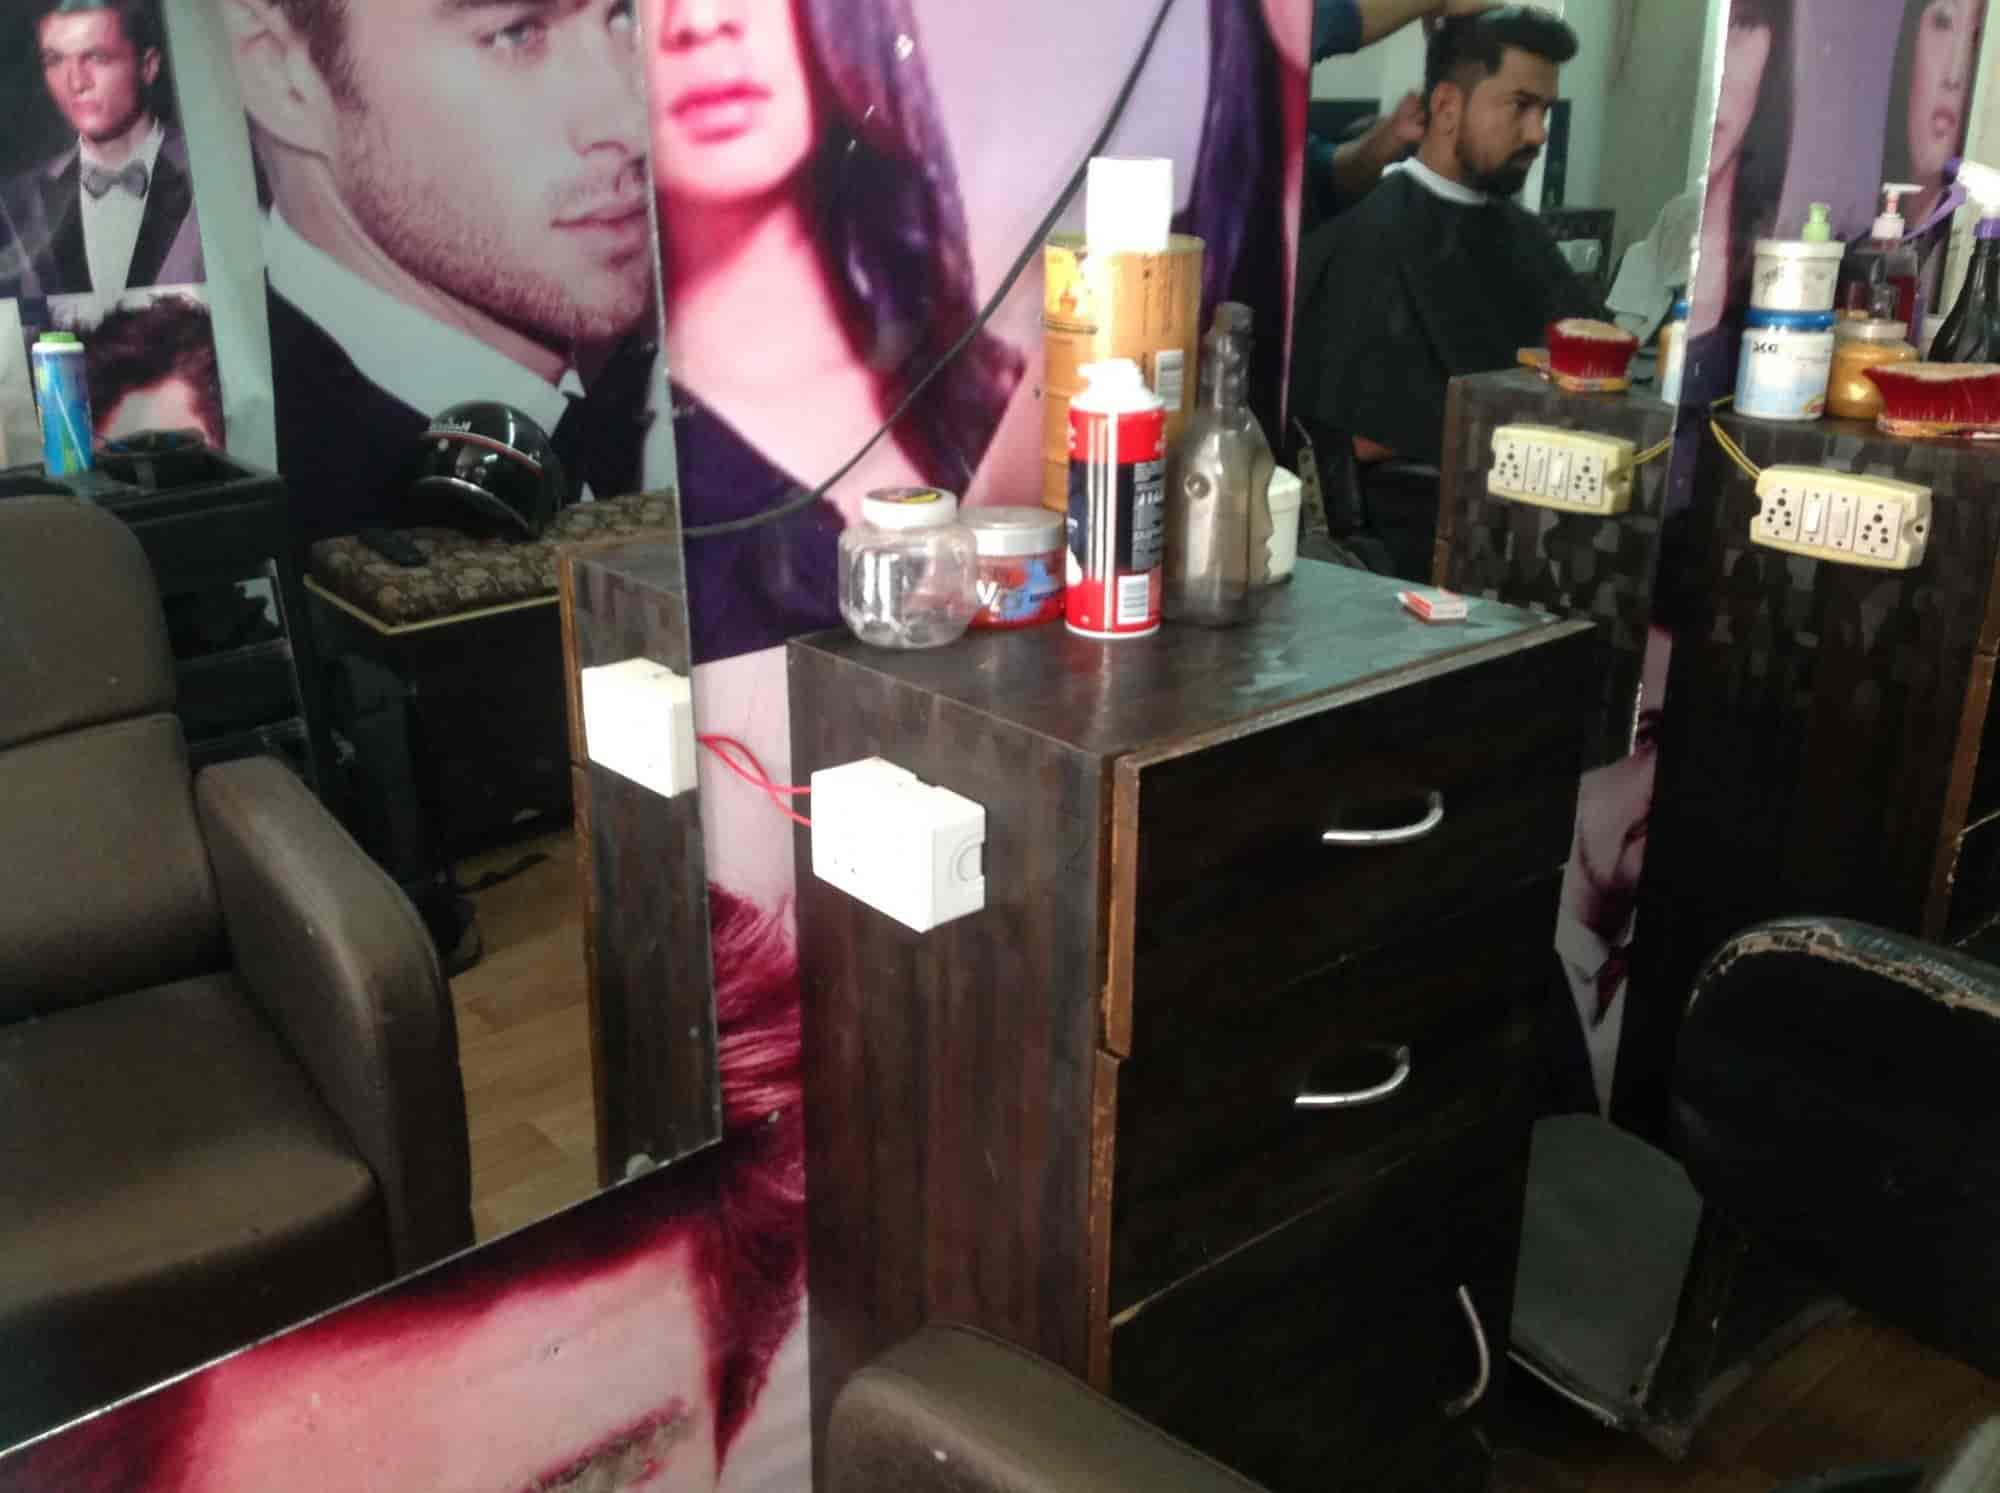 dm salon photos, uttam nagar, delhi- pictures & images gallery